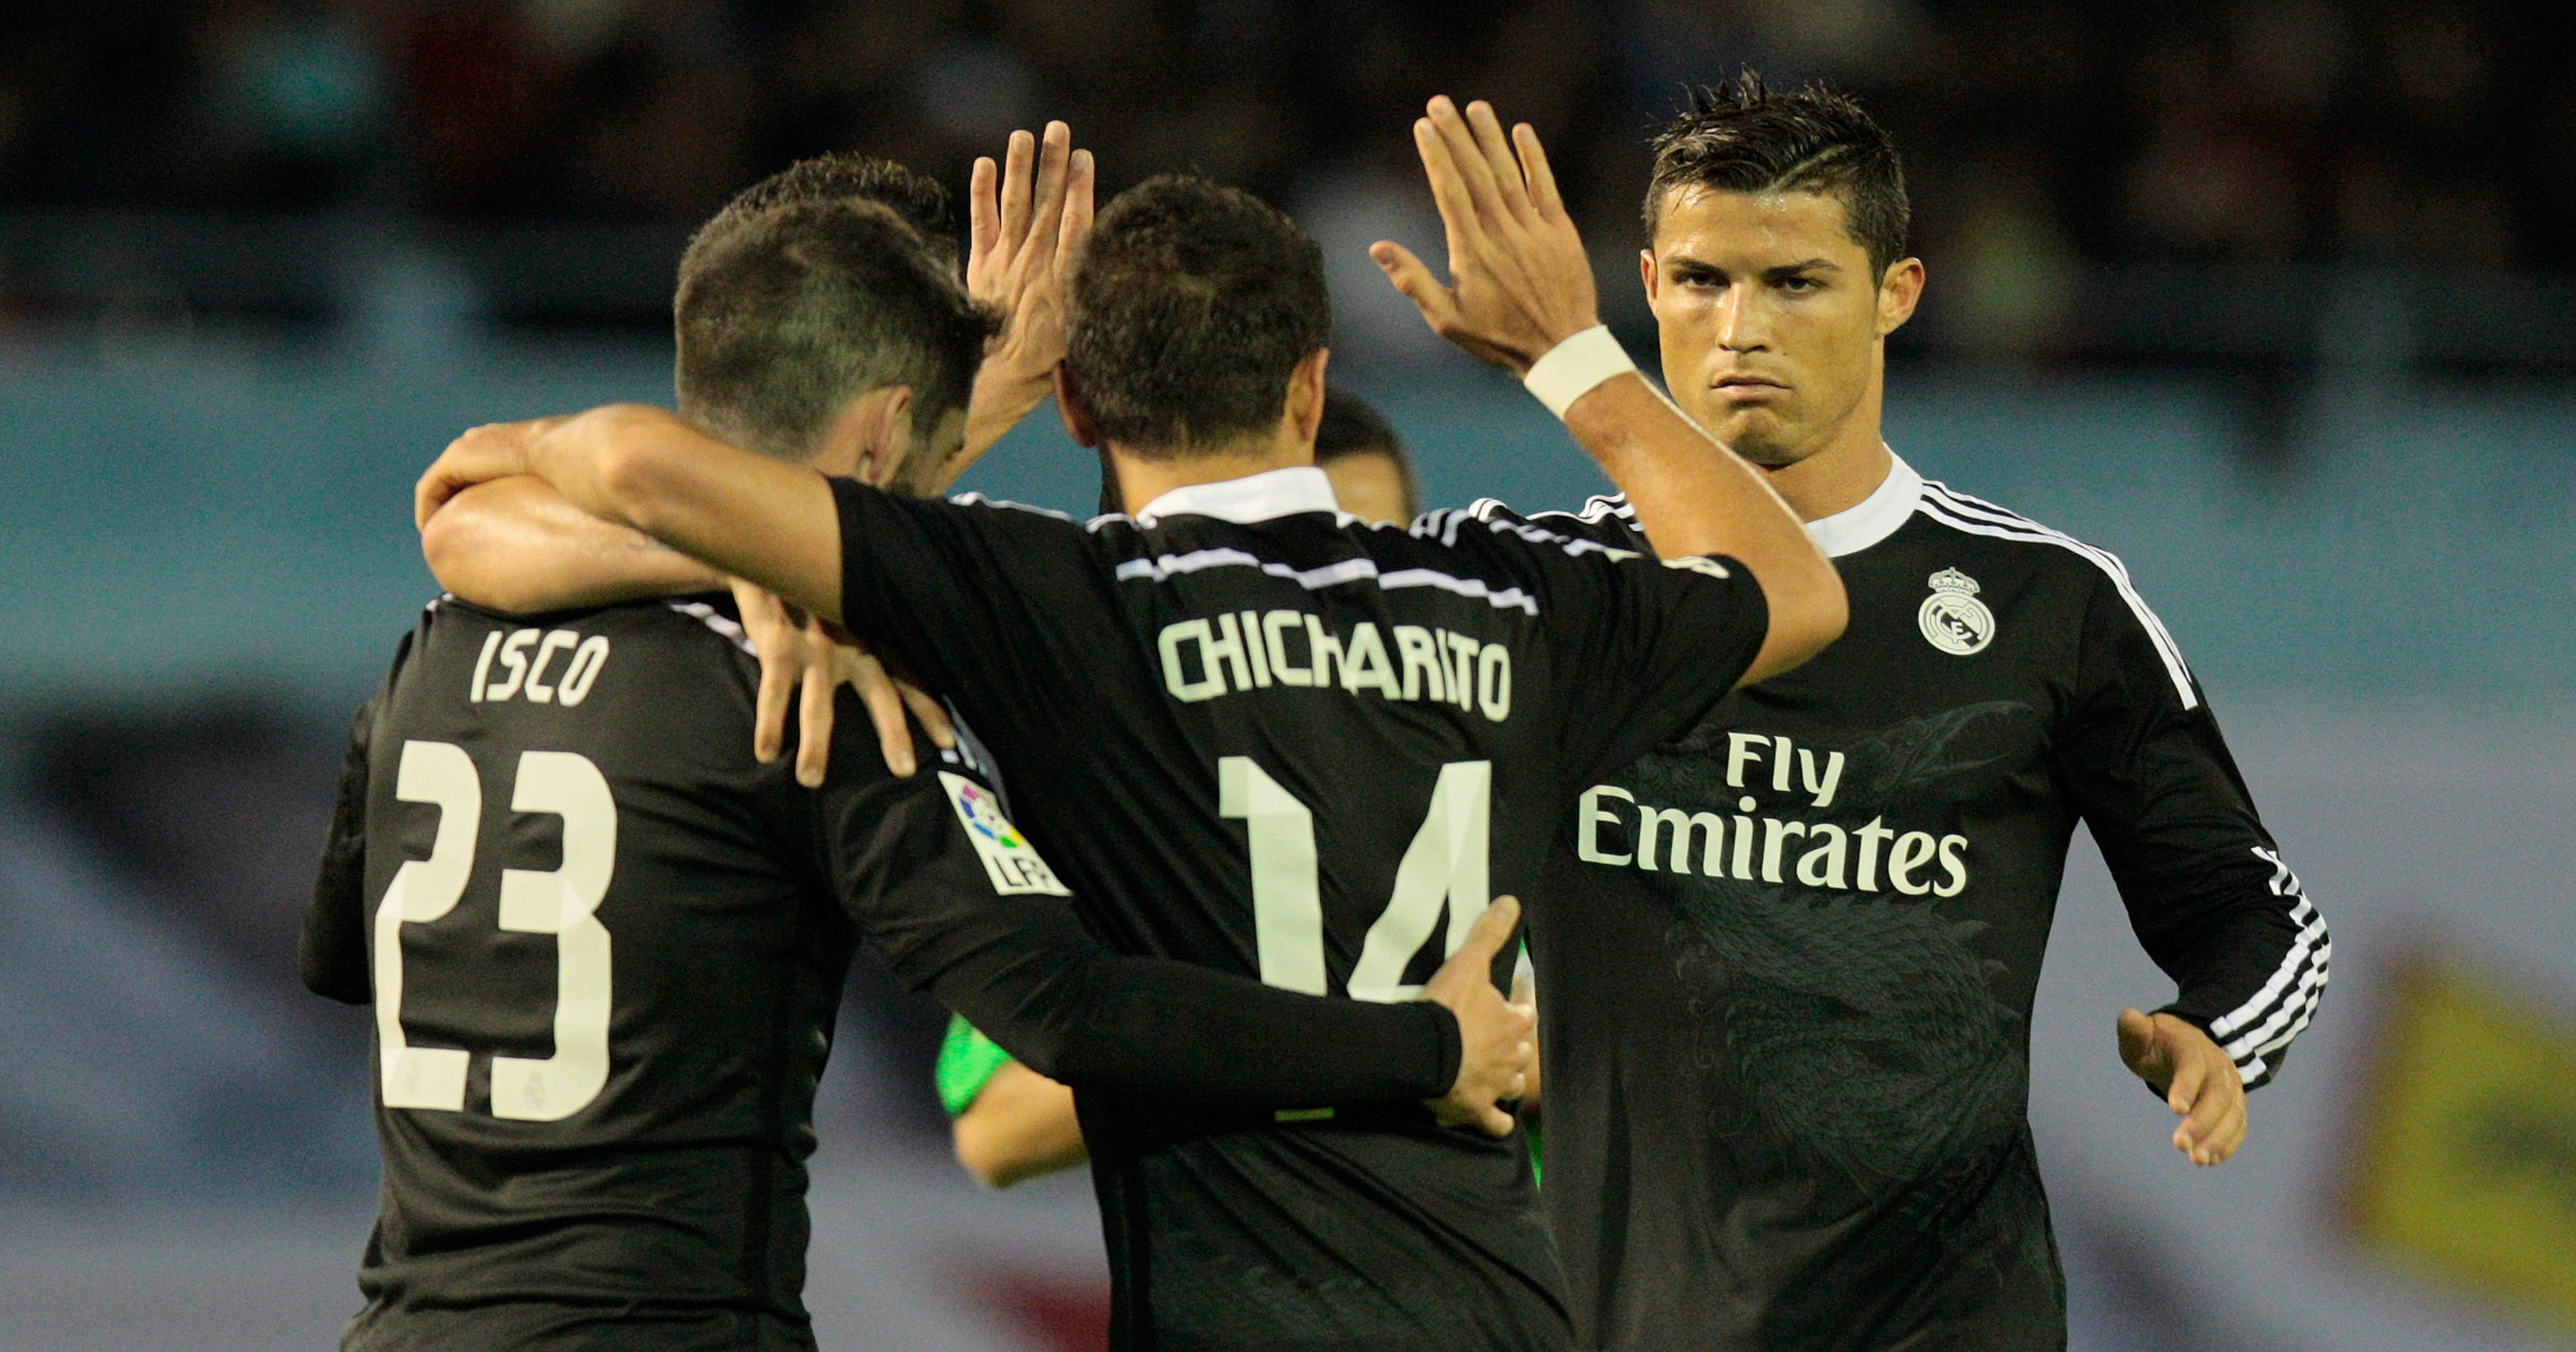 f0c89a59b Madrid wins 4-2 thriller at Celta to stay in title hunt